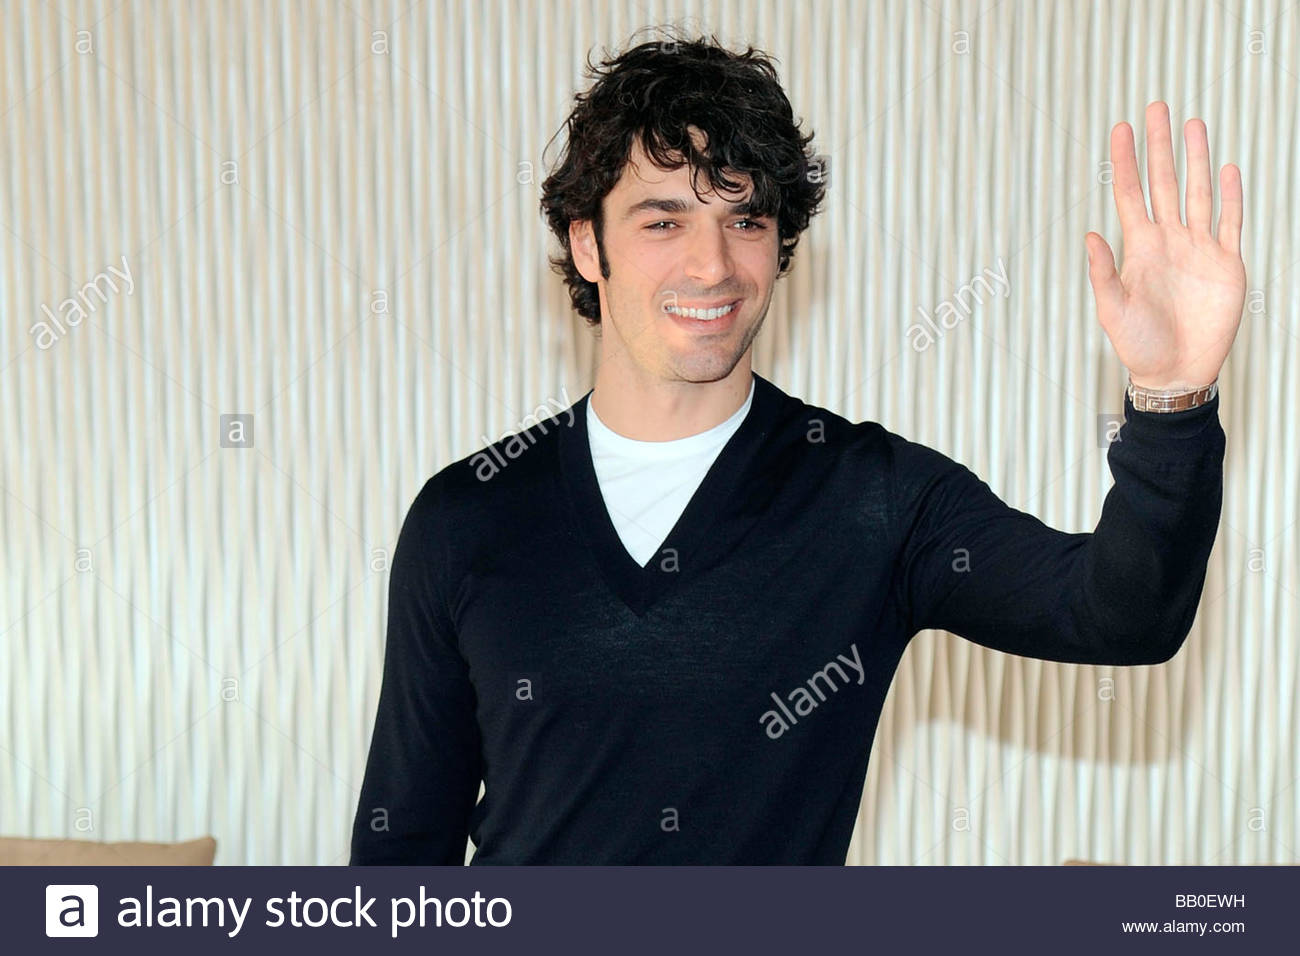 Luca Argentero Milano 2009 Diverso Da Chi Film Presentation Stock Photo Alamy